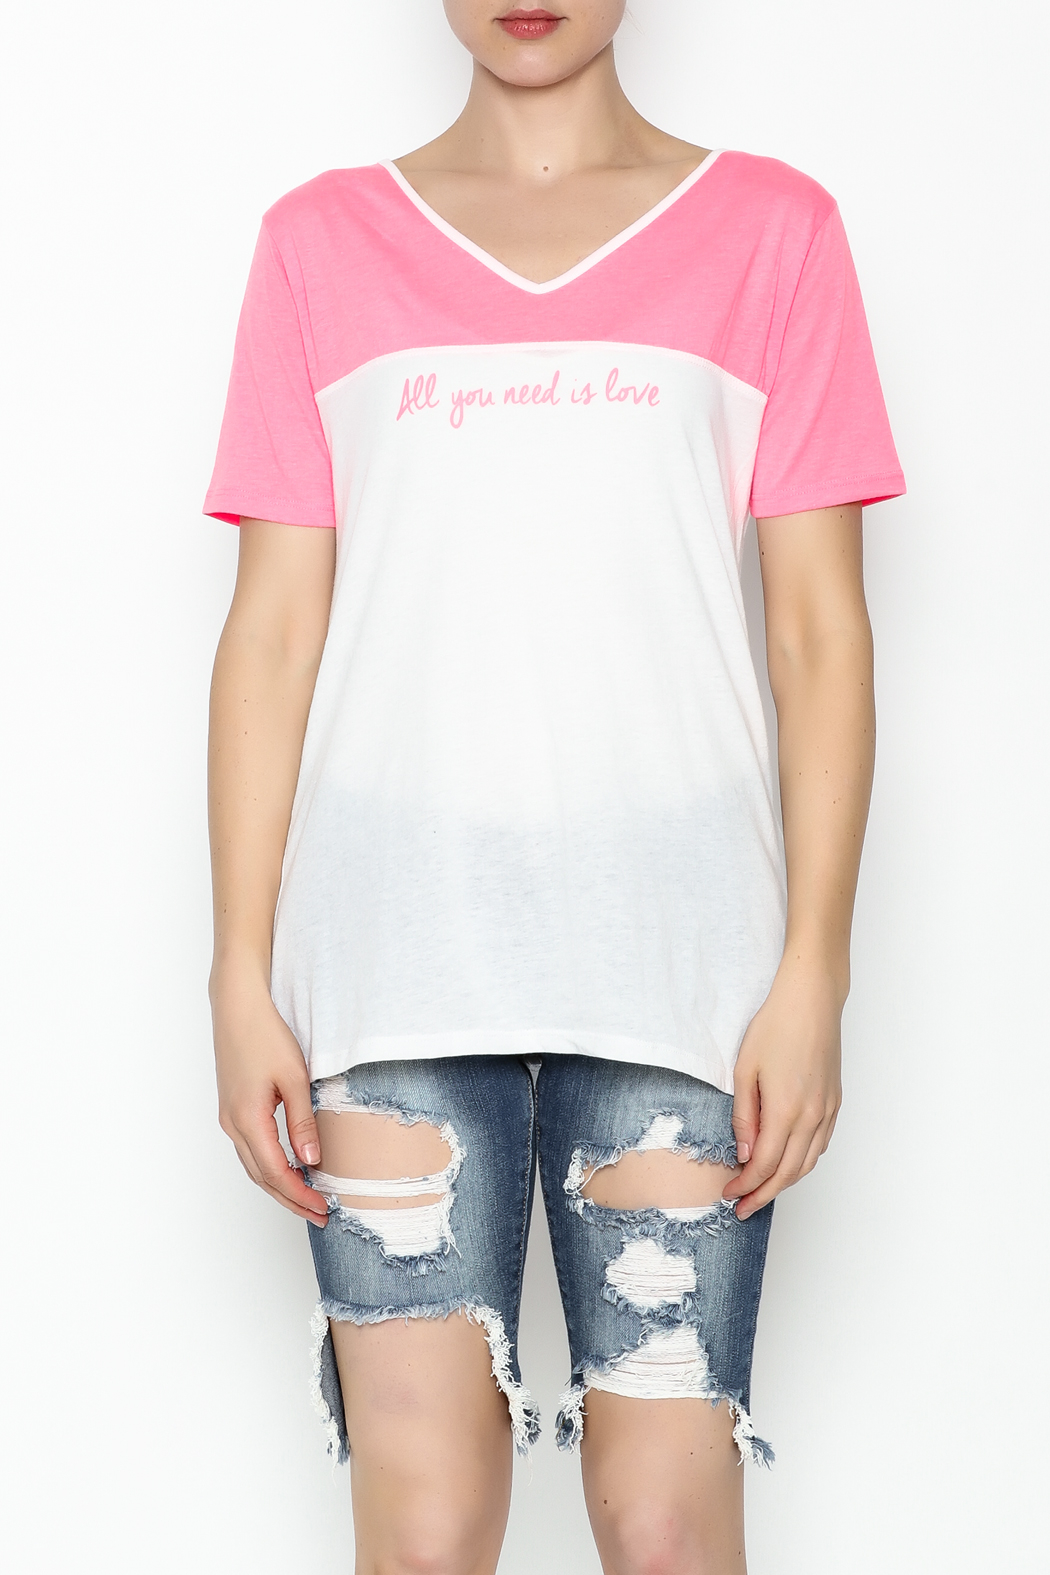 Daisy's Fashions V Neck Printed Tee - Front Full Image